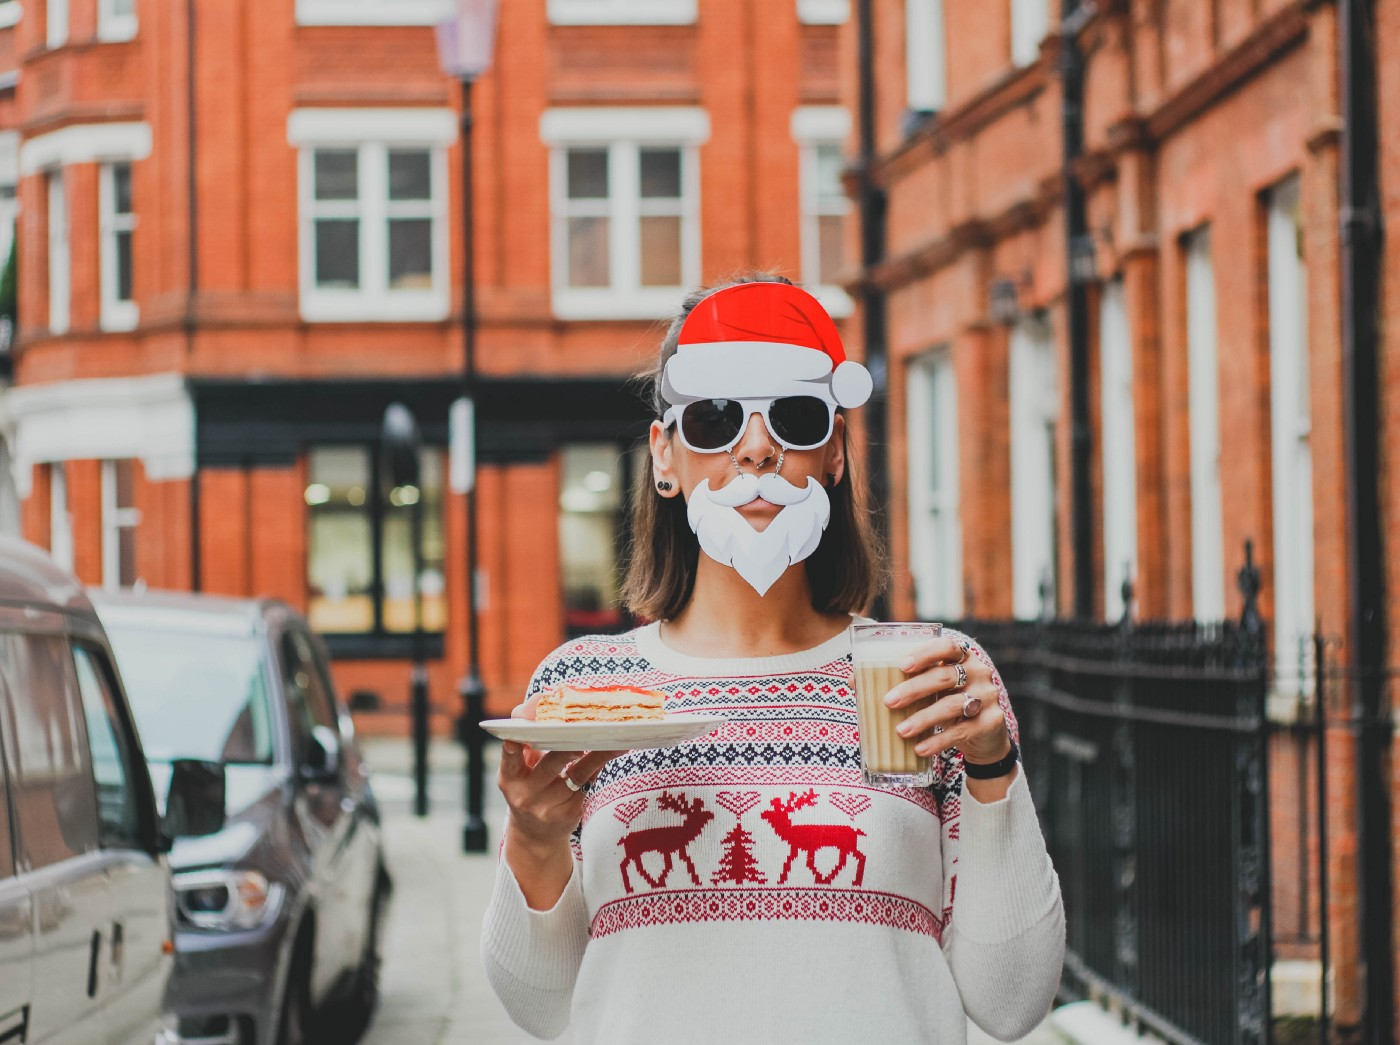 Woman in holiday sweater, sunglasses, and Santa hat and beard holds a holiday drink and plate of cookies on a city street.